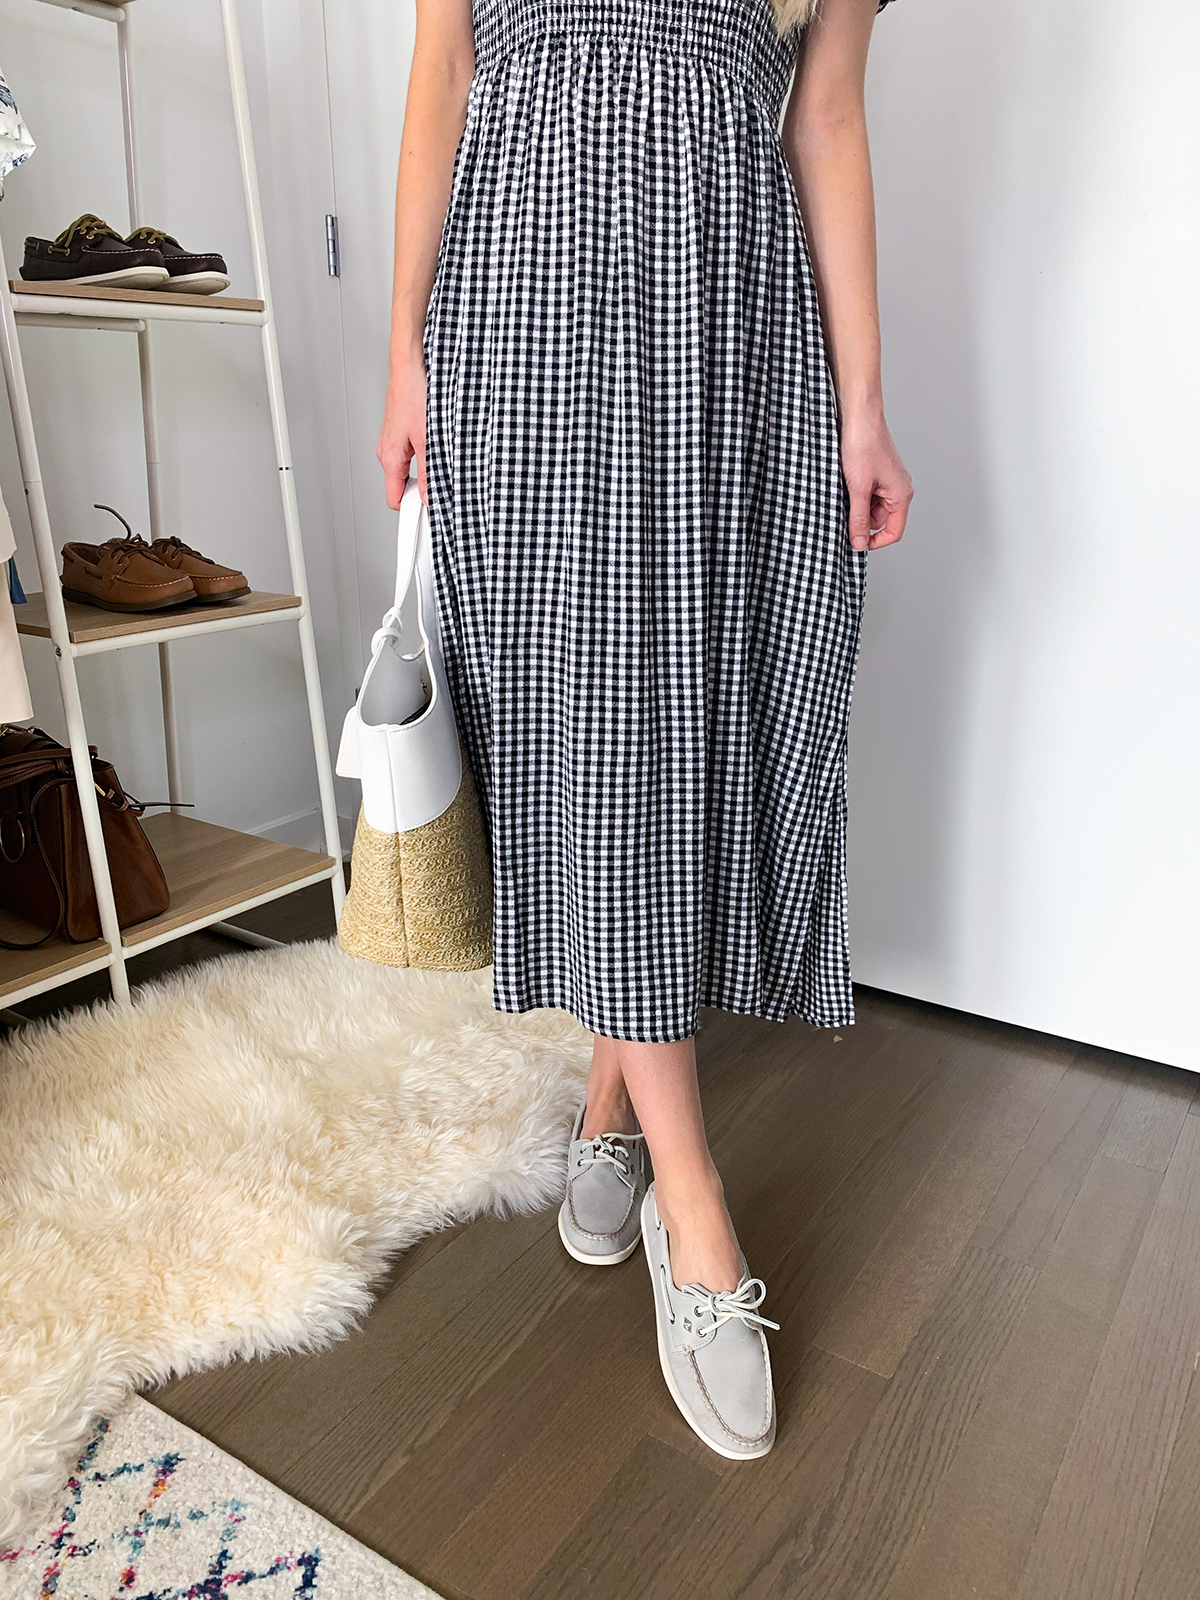 dress with boat shoes